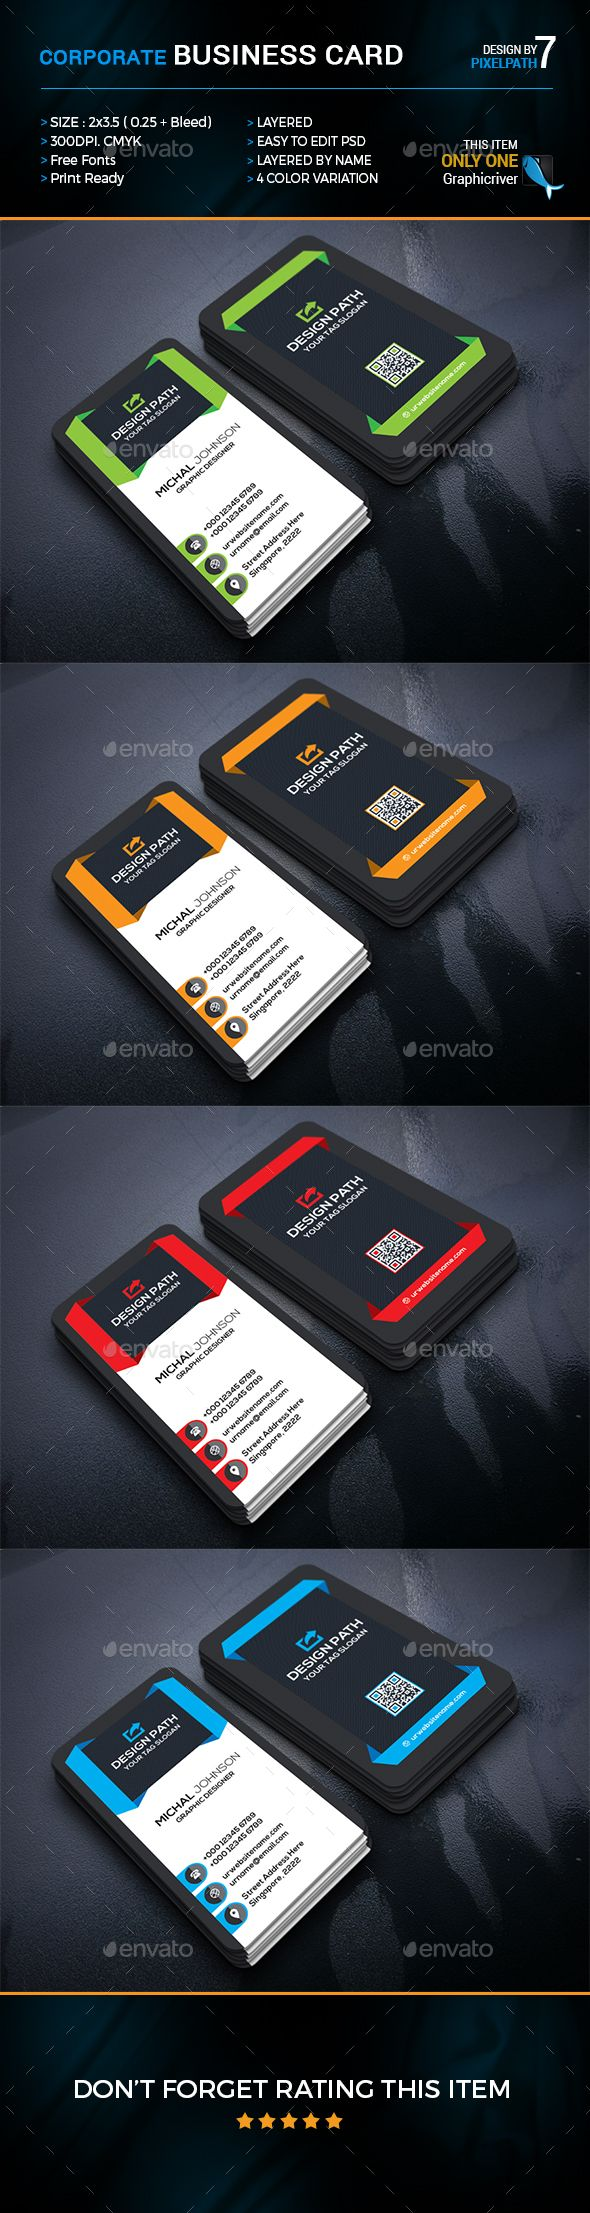 Ready real estate business cards images card design and card template 128 best real estate business cards images on pinterest business buy corporate business card by on reheart Images